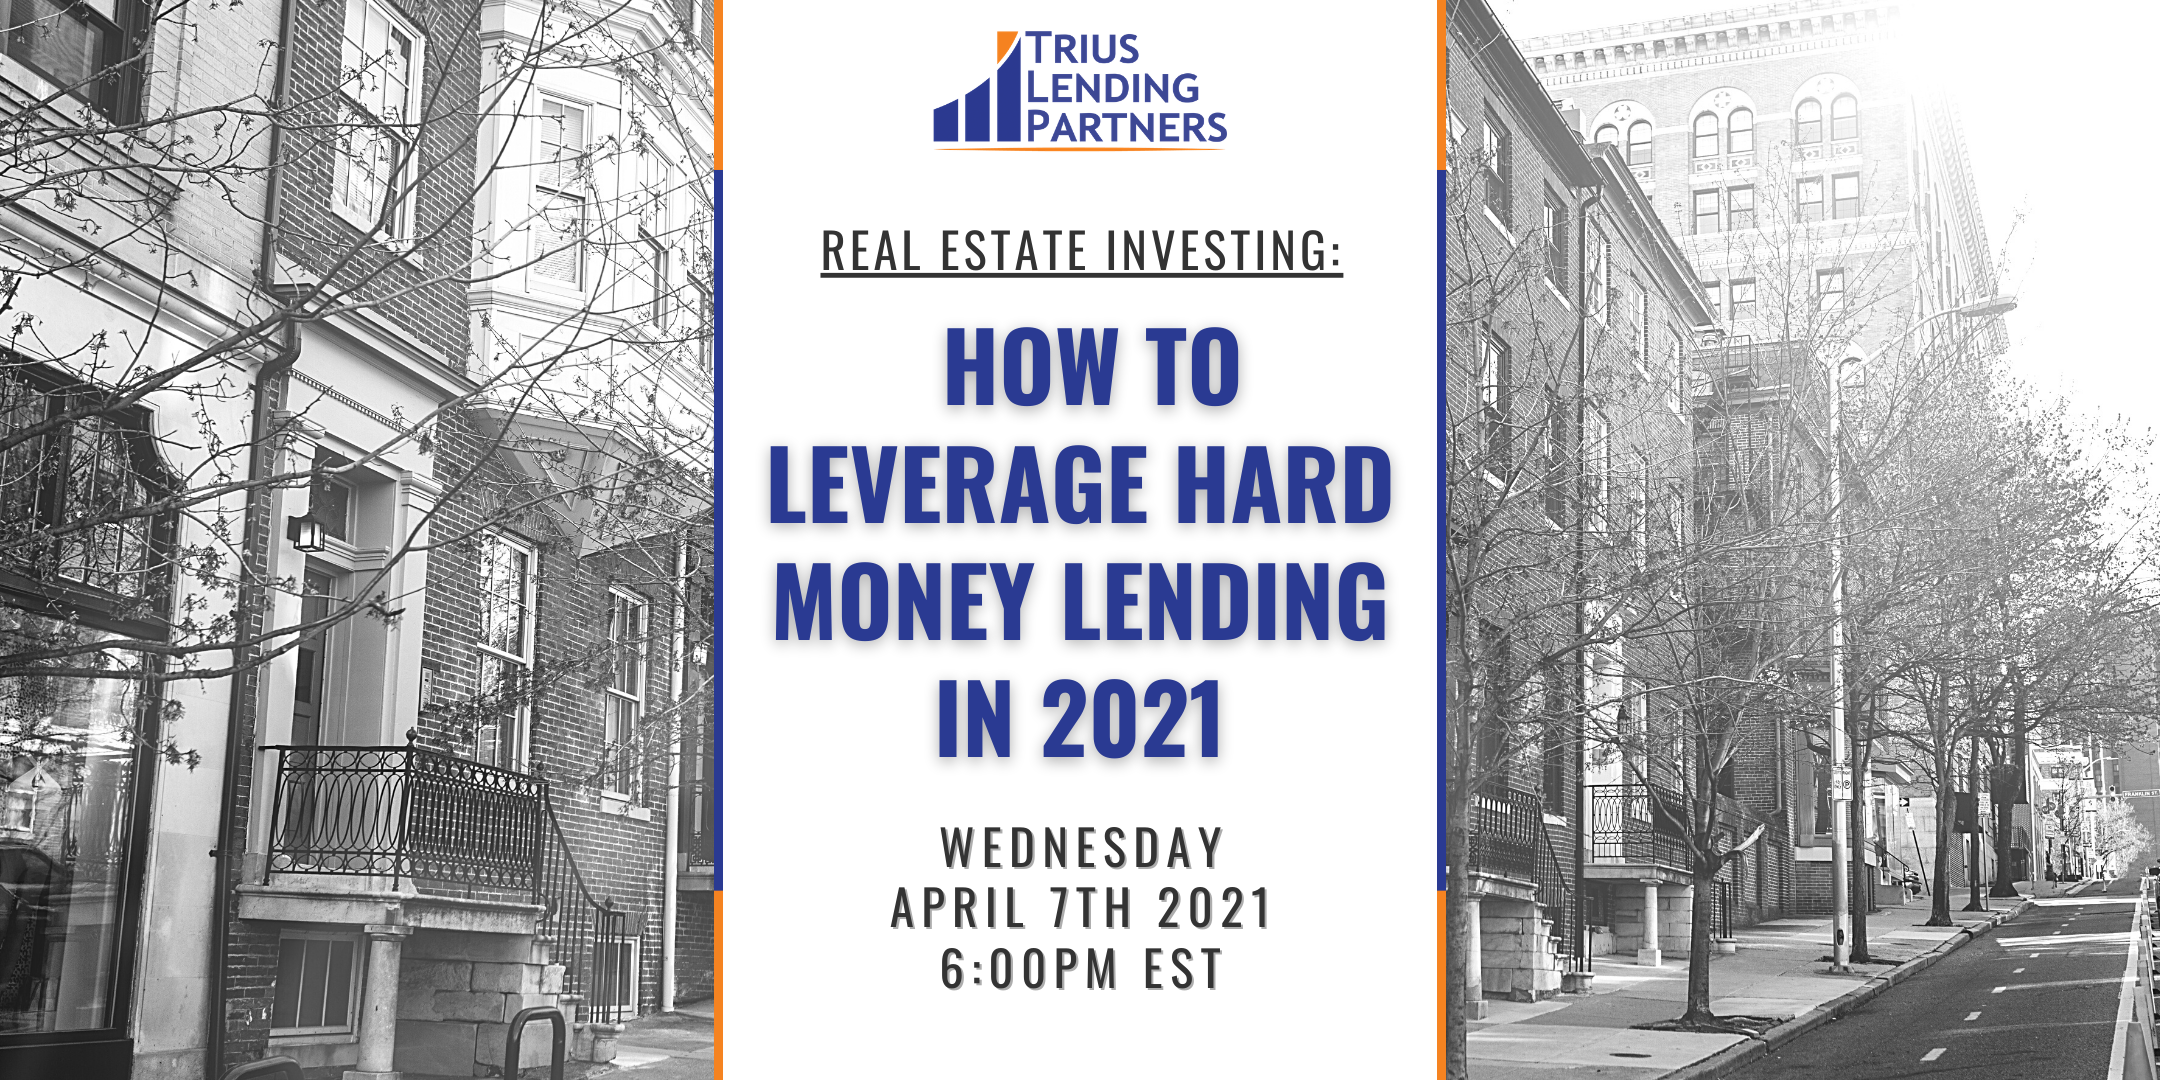 Real Estate Investing: How to Leverage Hard Money Lending in 2021